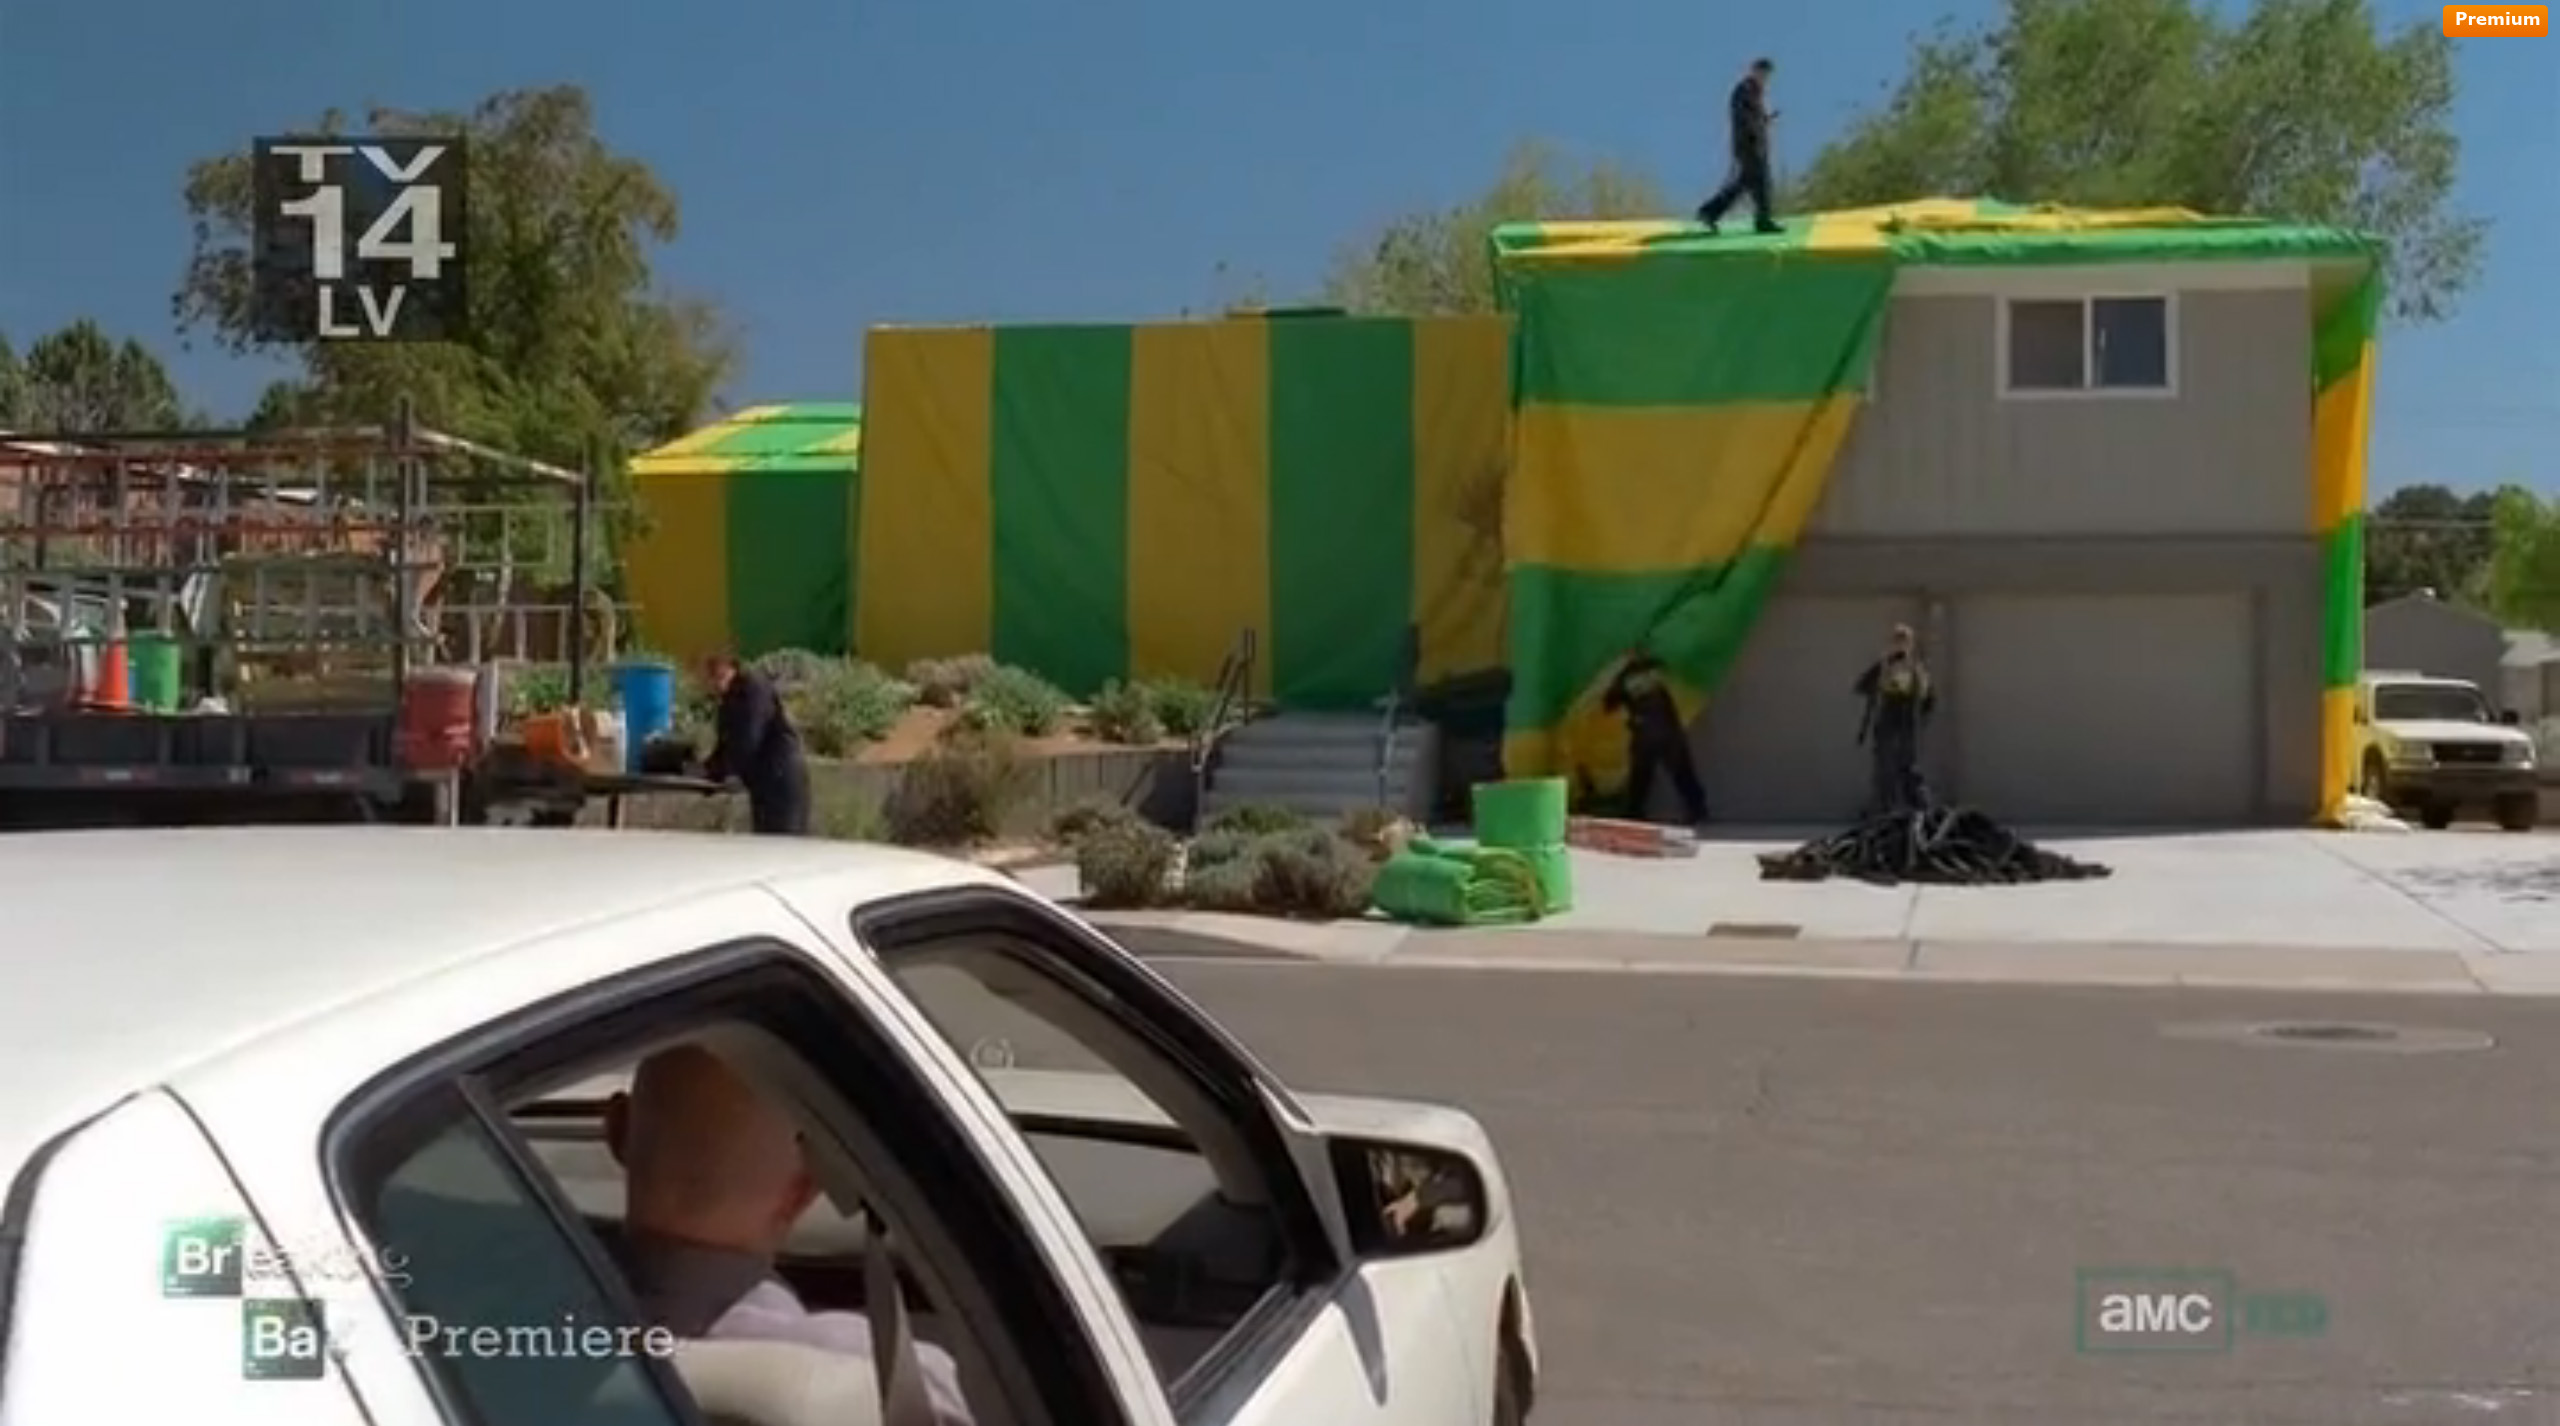 A tent over the whole house? & Expect Nothing! - F-ing Neighbor